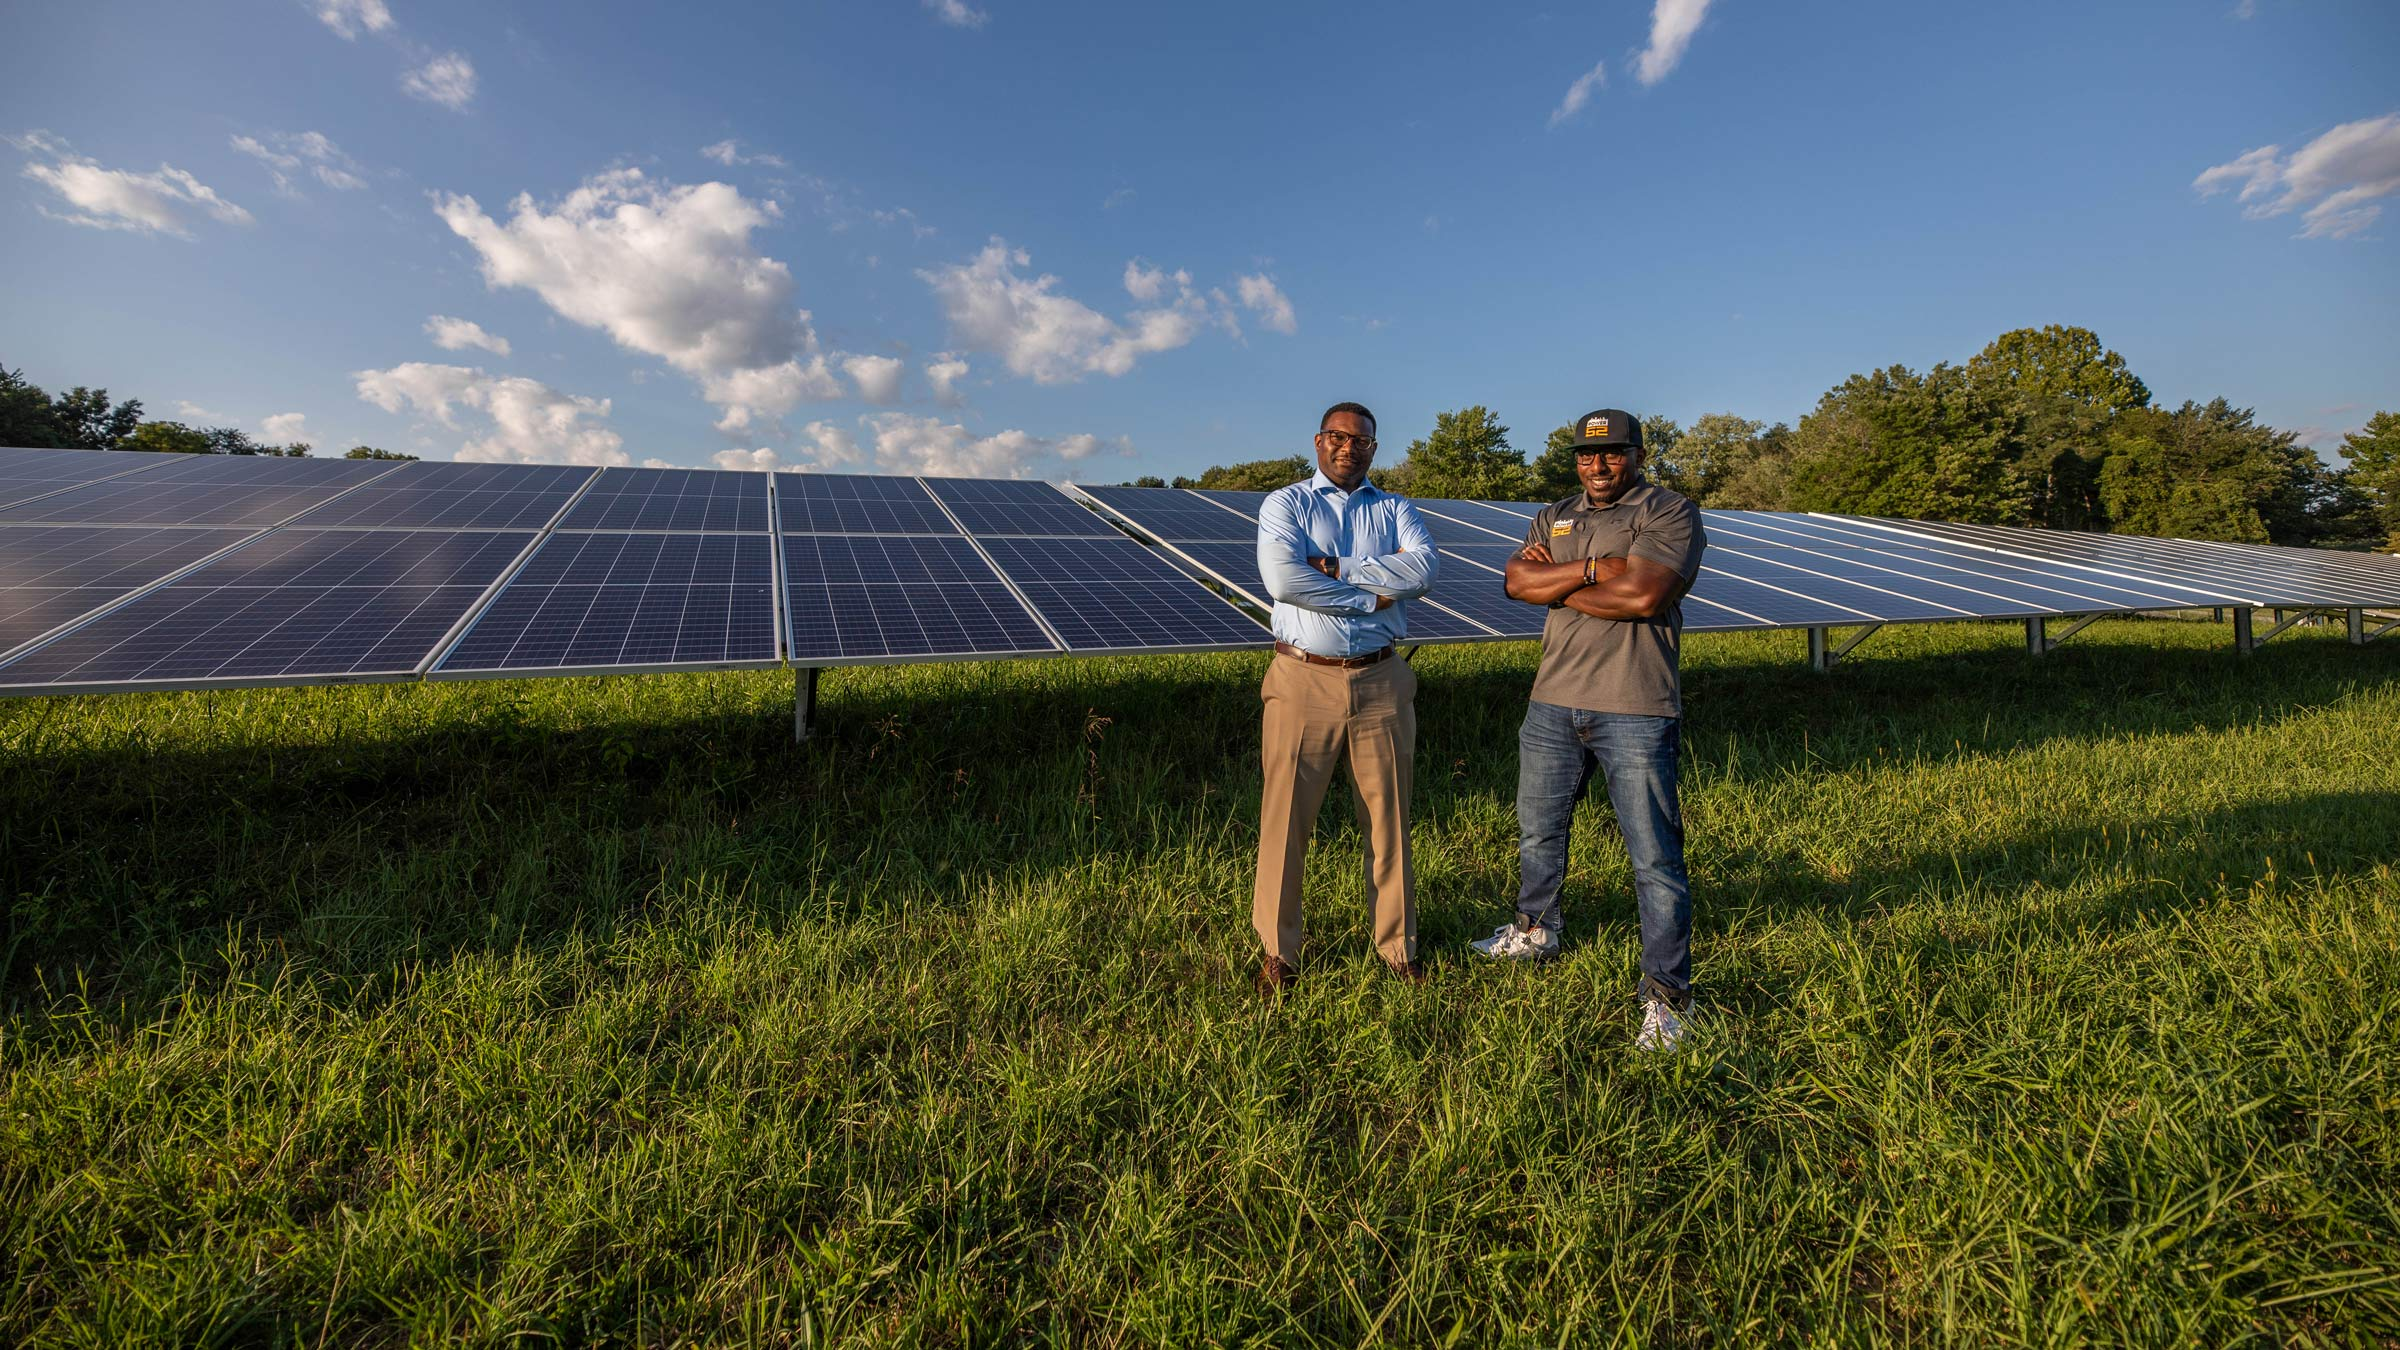 Two men pose in front of solar panels in a field.